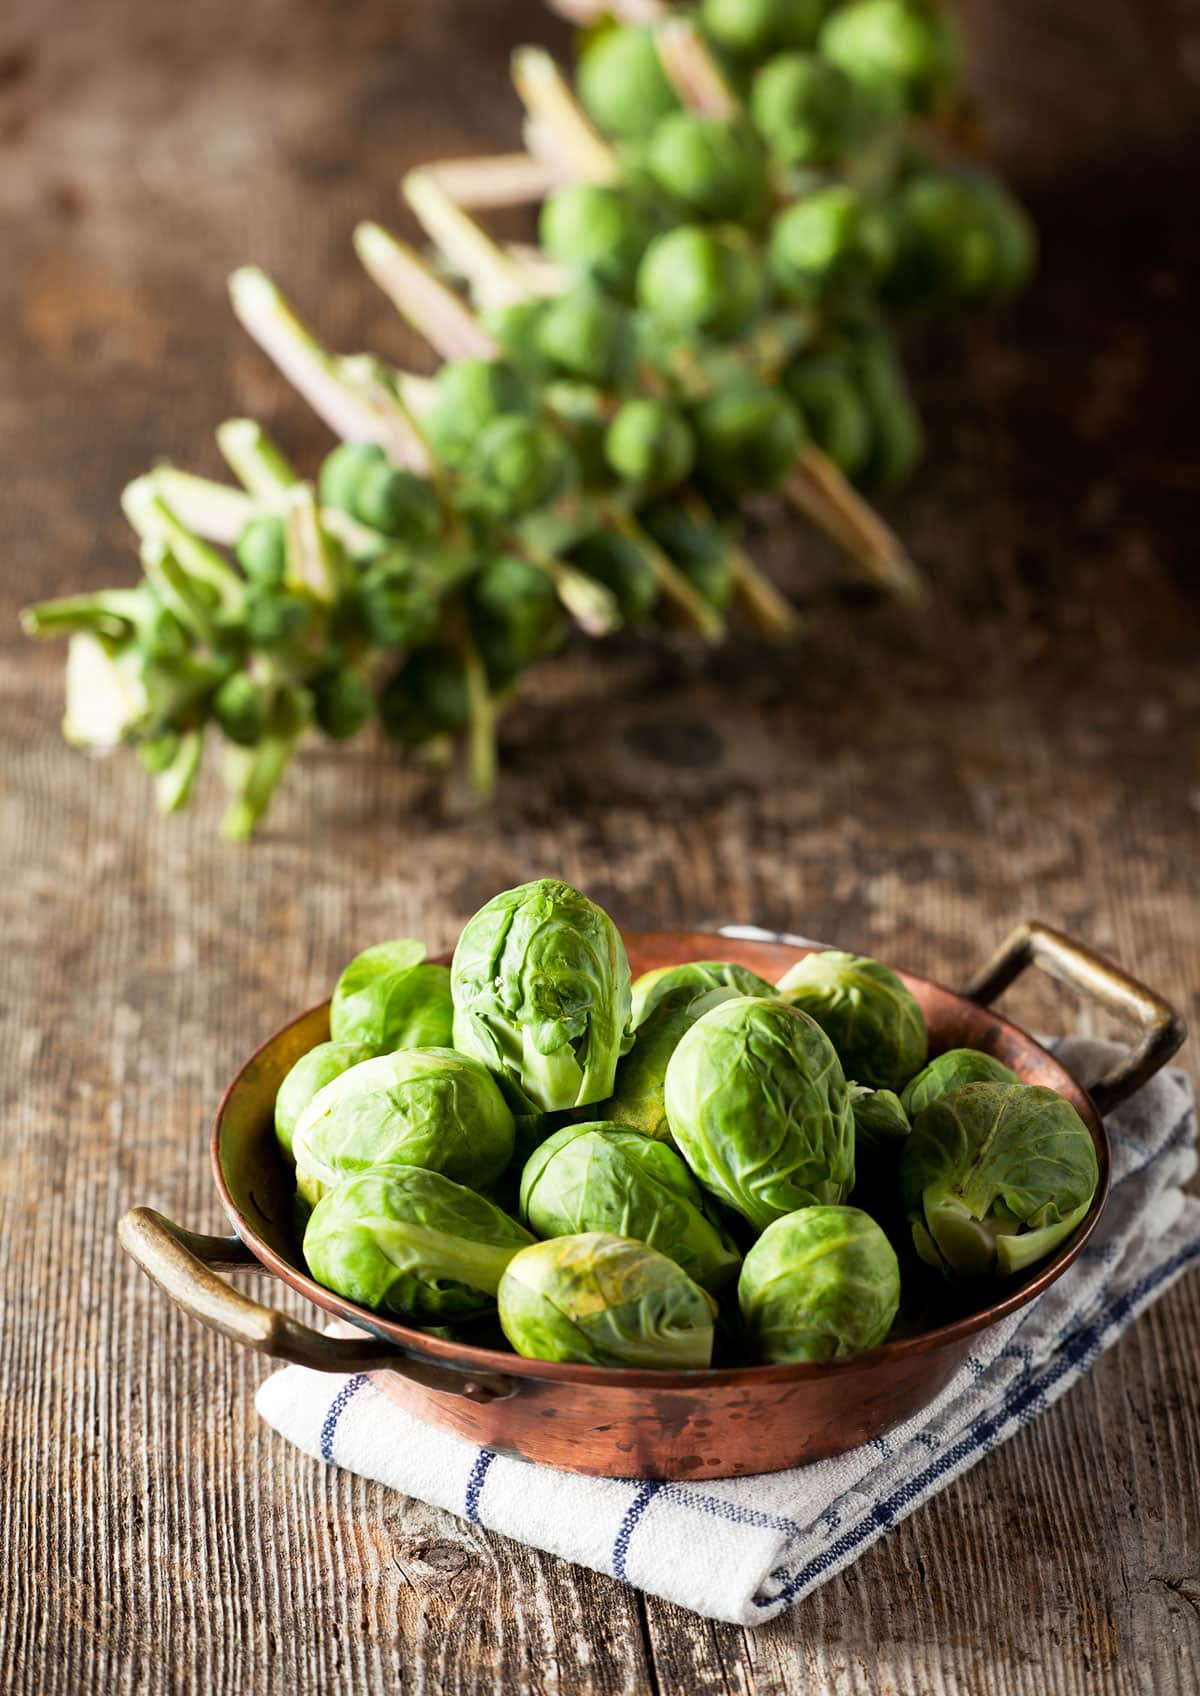 Brussels sprouts on stalk and in bowl